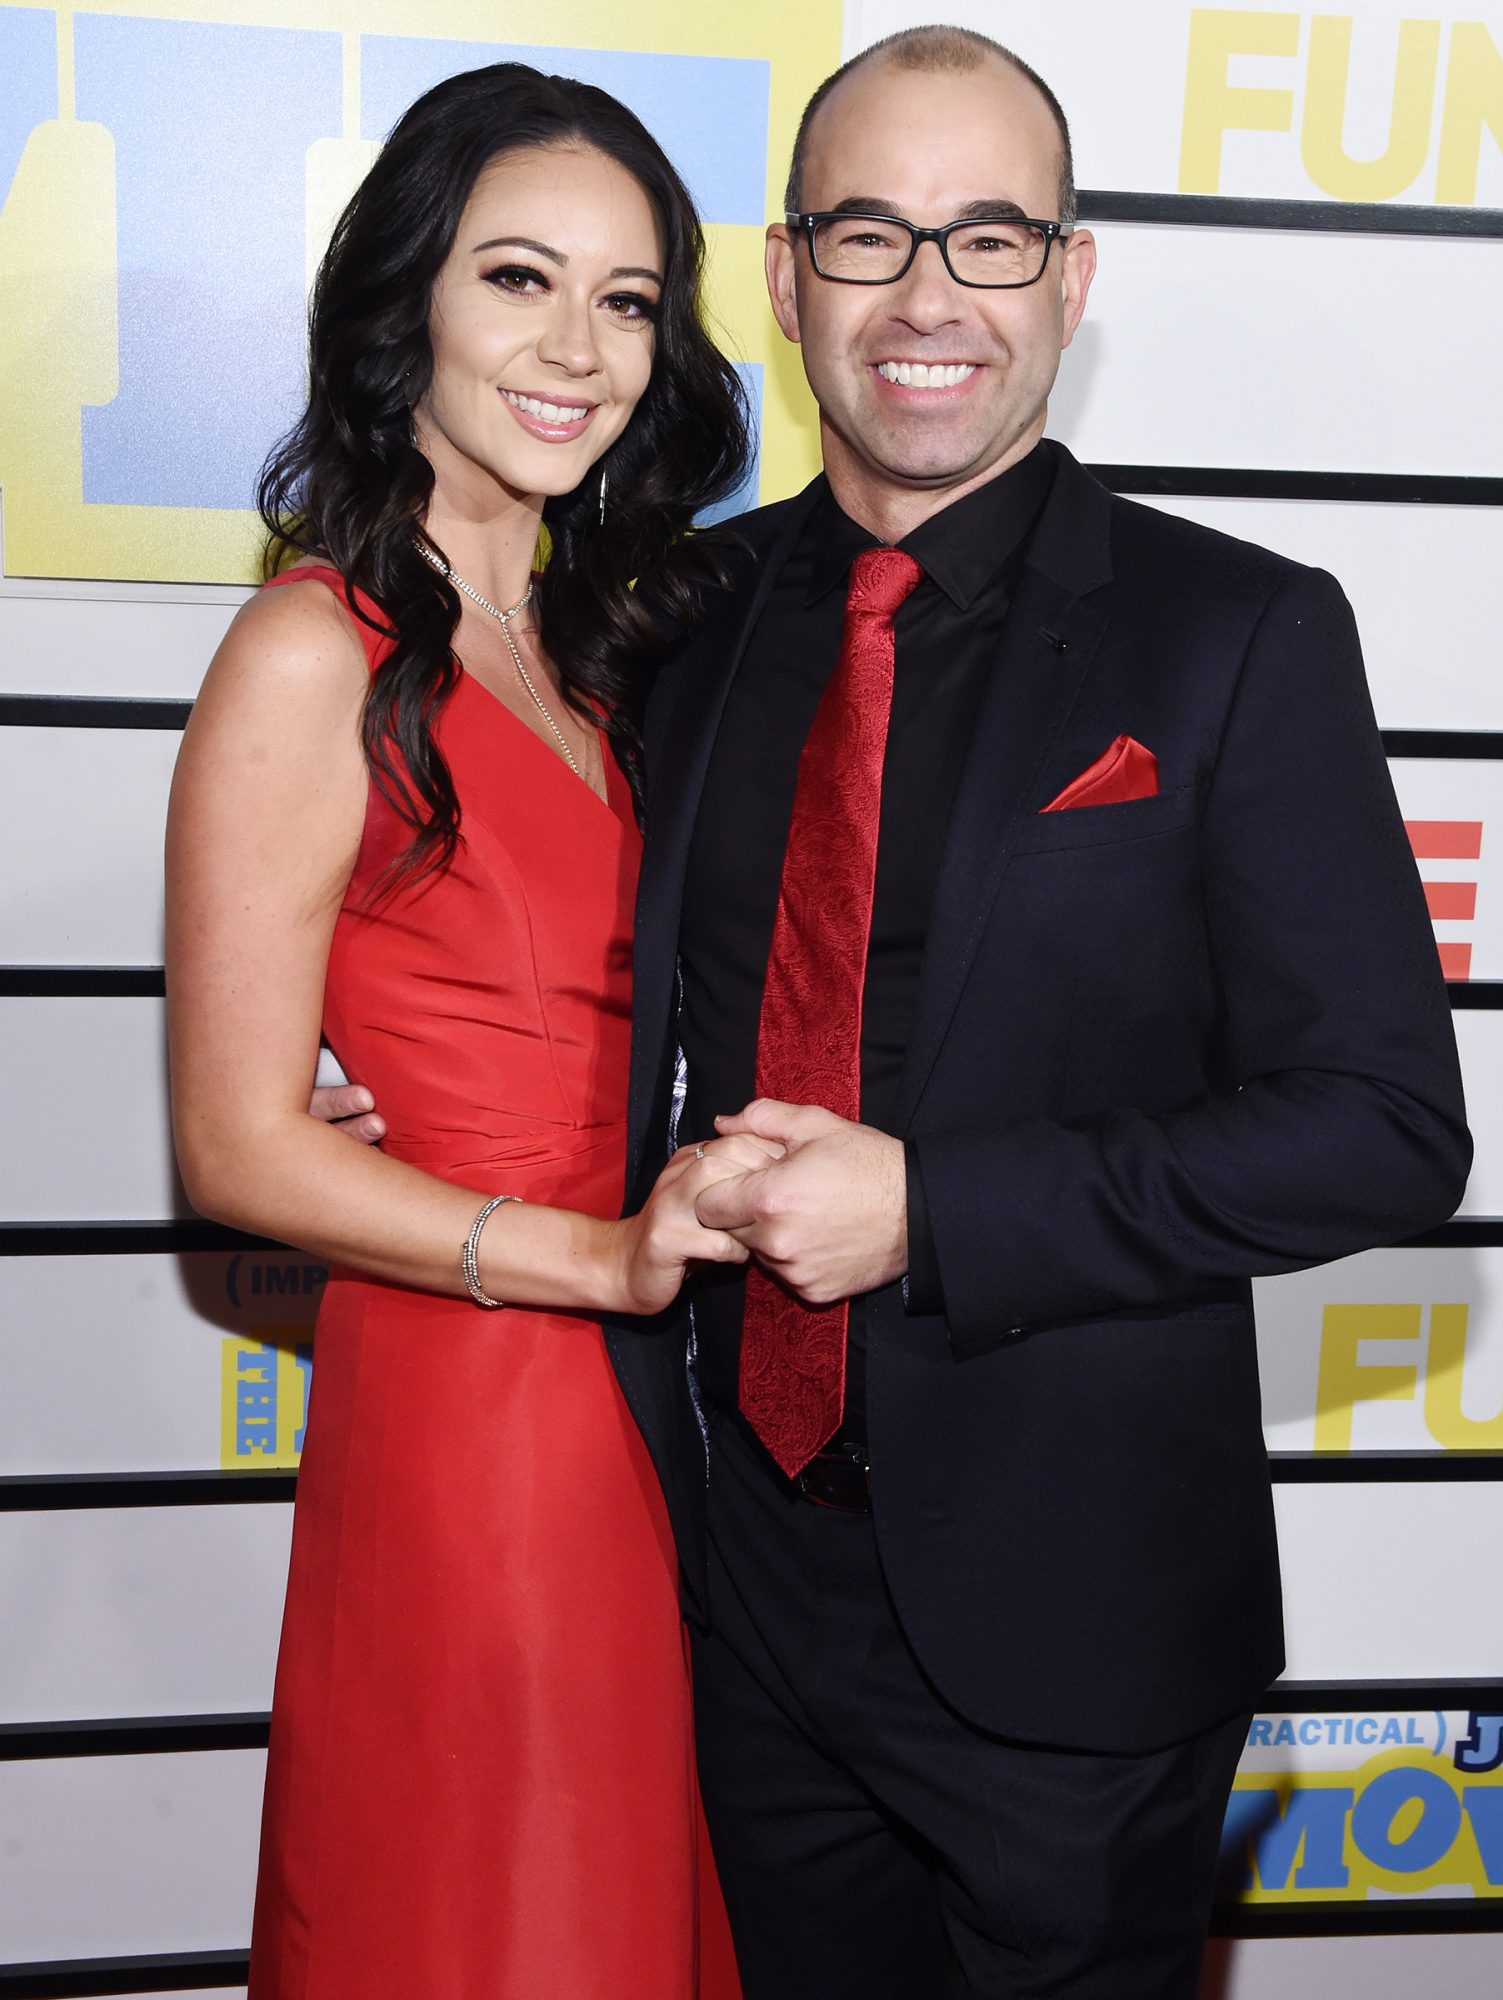 """The Impractical Jokers star wed his fiancée on Sept. 25, PEOPLE exclusively announced.                             Murray, 44, and Davies tied the knot in an outdoor ceremony at the Lake House Inn in Bucks County, Pennsylvania, in front of family and friends, including the rest of the Jokers: Sal Vulcano, Brian Quinn and Joe Gatto, who served as best man and also officiated the wedding.                             """"We had four different weddings being planned simultaneously, depending on how everything worked,"""" Murray told PEOPLE of how they reworked their plans as COVID-19 restrictions shifted over the past six months.                             """"We ended up going with a compromised list, which was about a quarter of the original list that we had,"""" he continued. """"Honestly, it was a lot less stress having one quarter of the guest list.""""                             """"It's been interesting,"""" the actor added. """"But all that matters is that our closest friends and family were there, and all that matters to me, truly, is that this one person was there besides me, and that she said yes."""""""